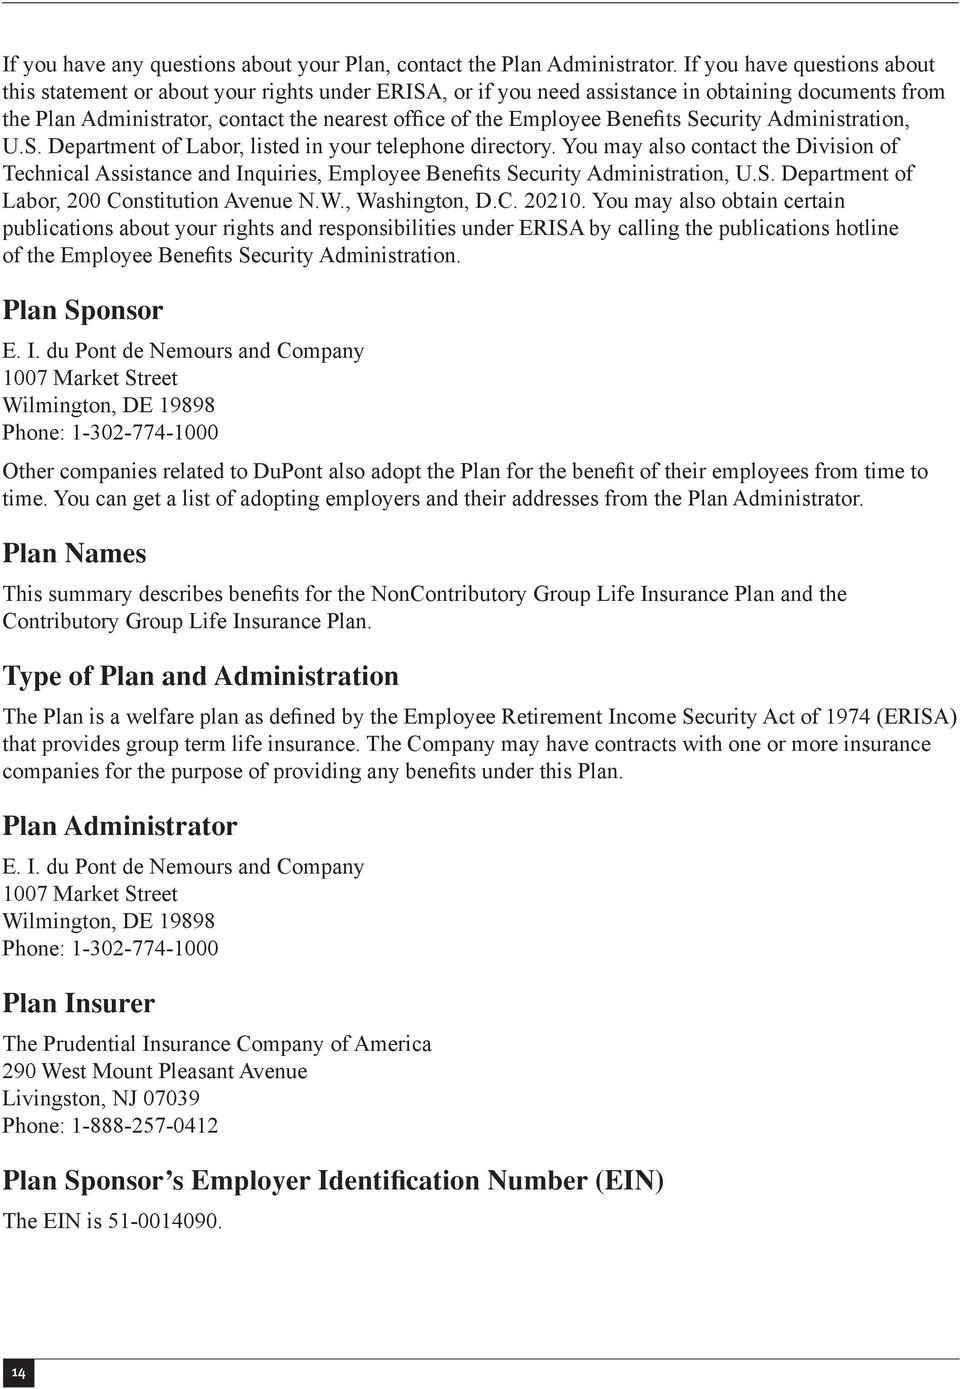 Benefits Security Administration, U.S. Department of Labor, listed in your telephone directory.